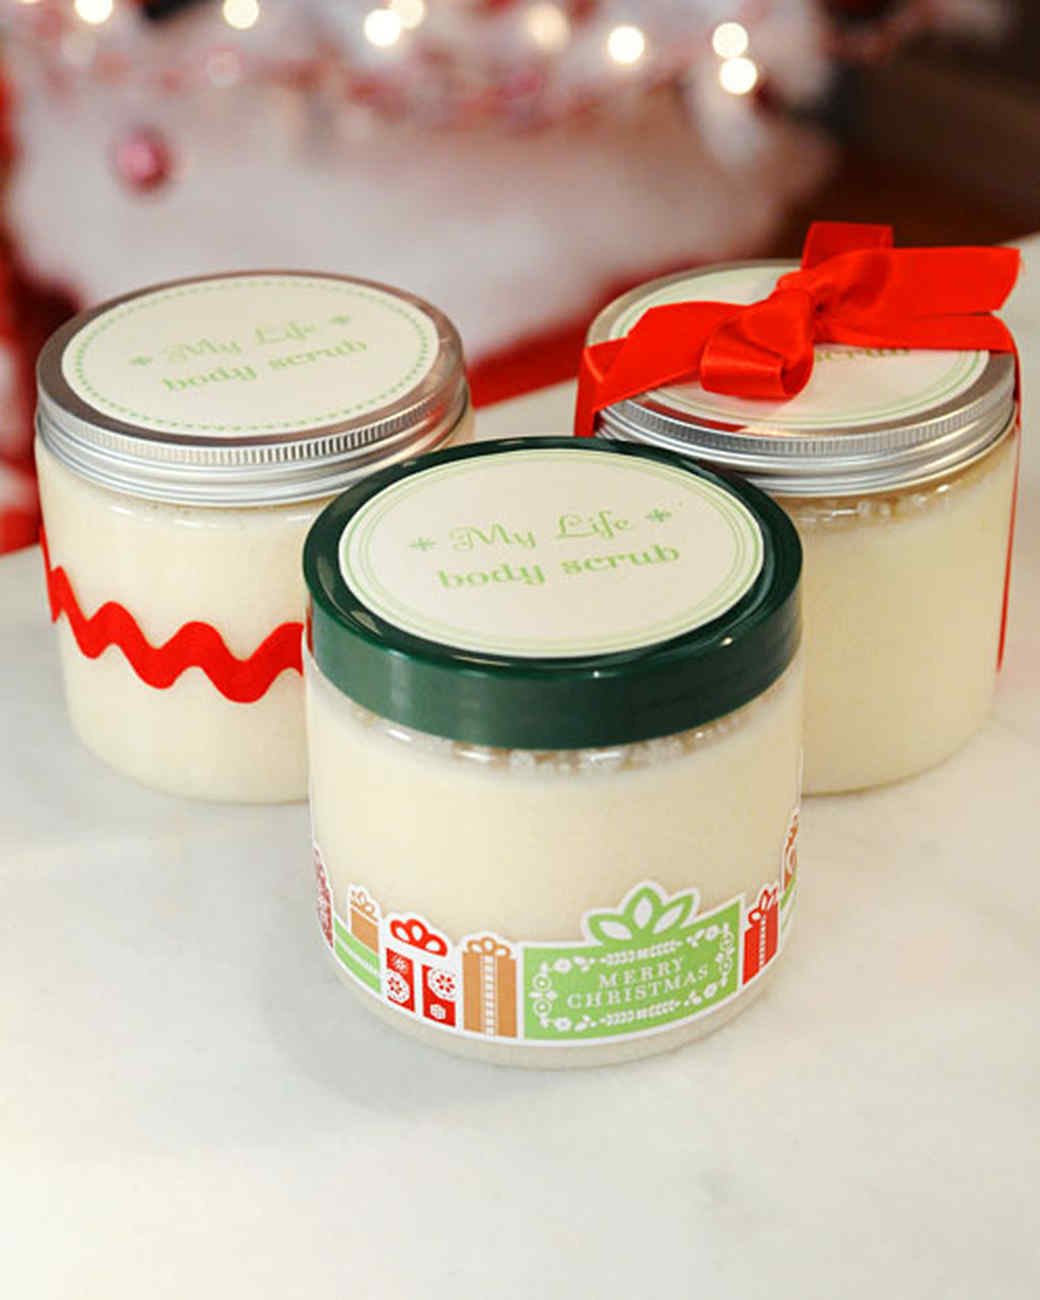 Sugar scrubs are a thoughtful gift you can easily create, right in your own kitchen. It only takes a few simple ingredients to put together a wonderfully scented scrub that can rival anything found at a .